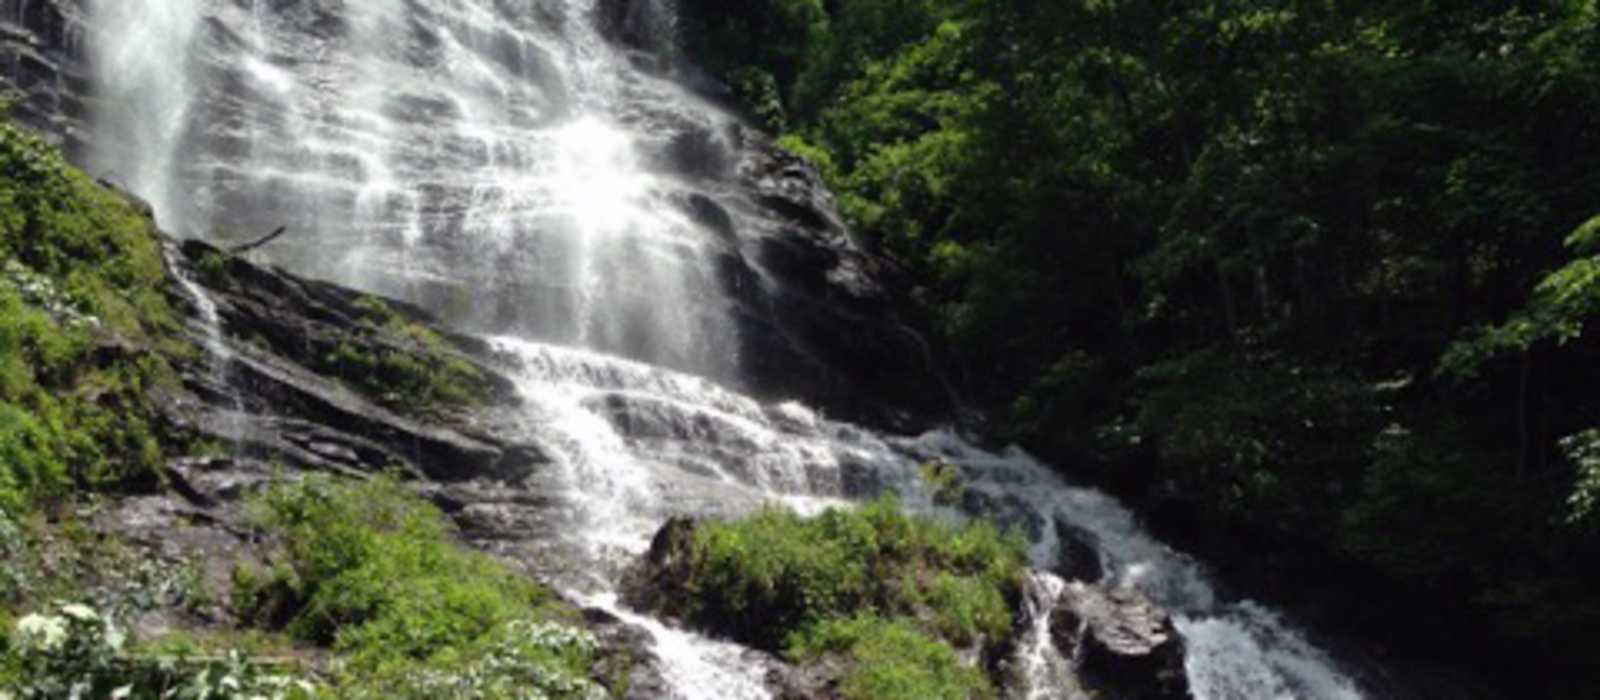 Wasserfall im Chattahoochee National Forest